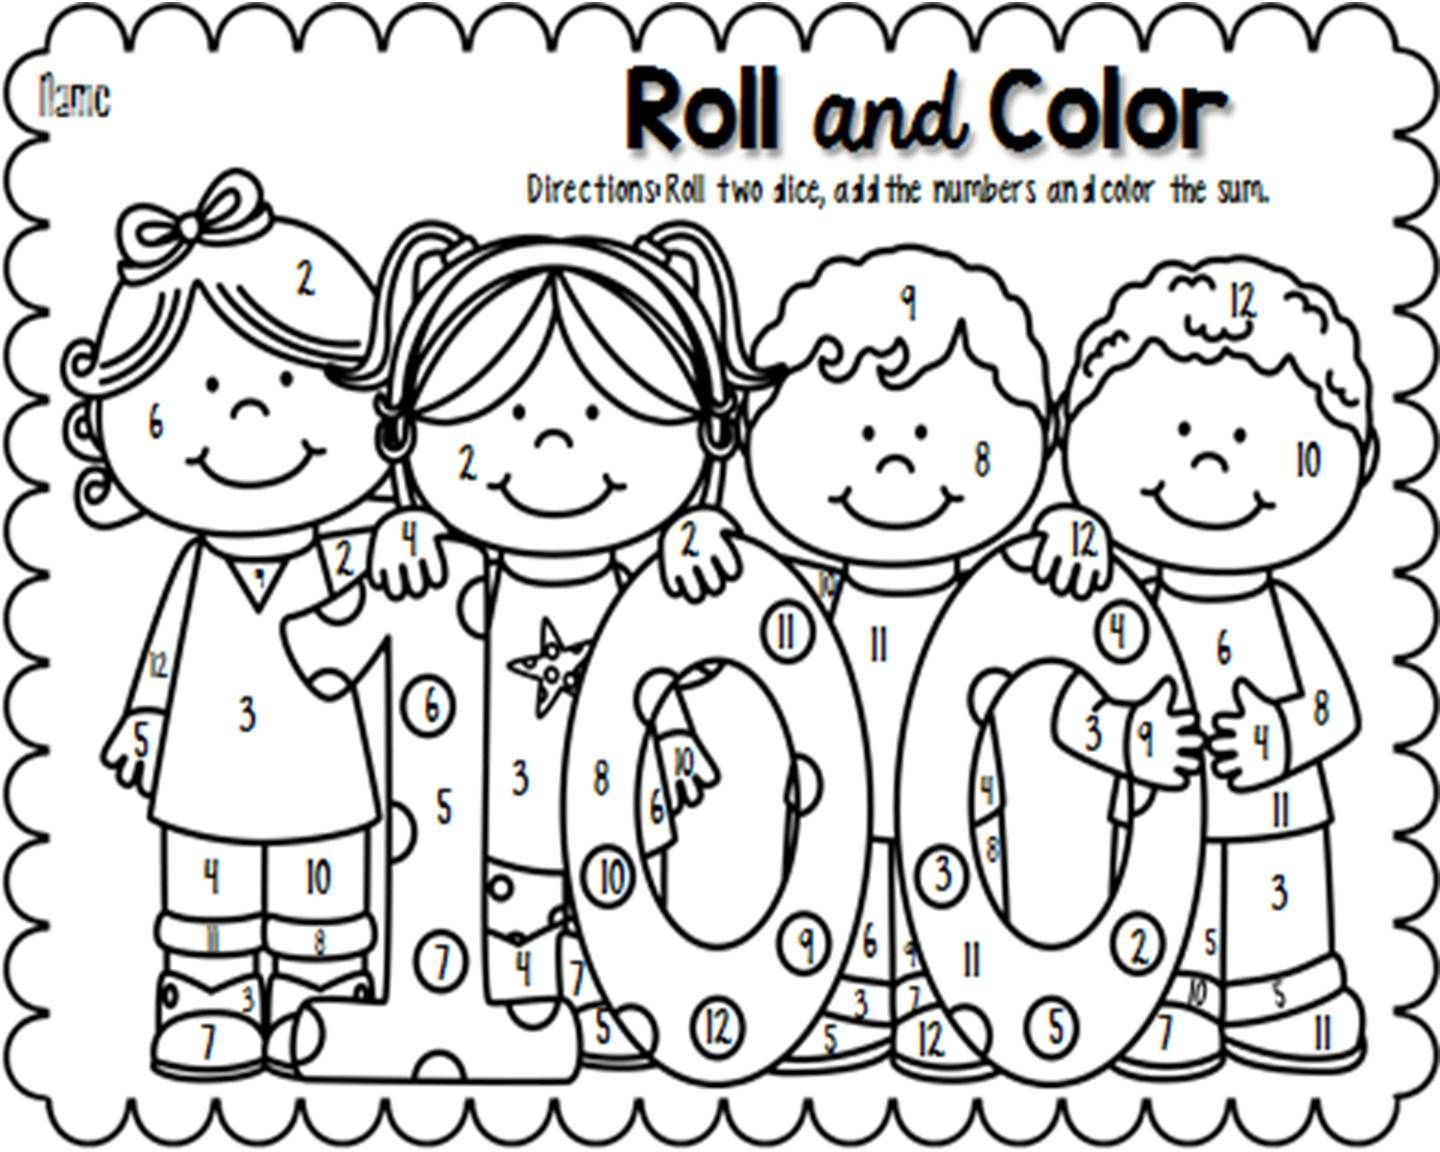 100th Day Of School Coloring Pages 100th Day Coloring Pages Lovely Unique Of School Sheet Collection As Davemelillo Com 100 Days Of School 100s Day School Coloring Pages